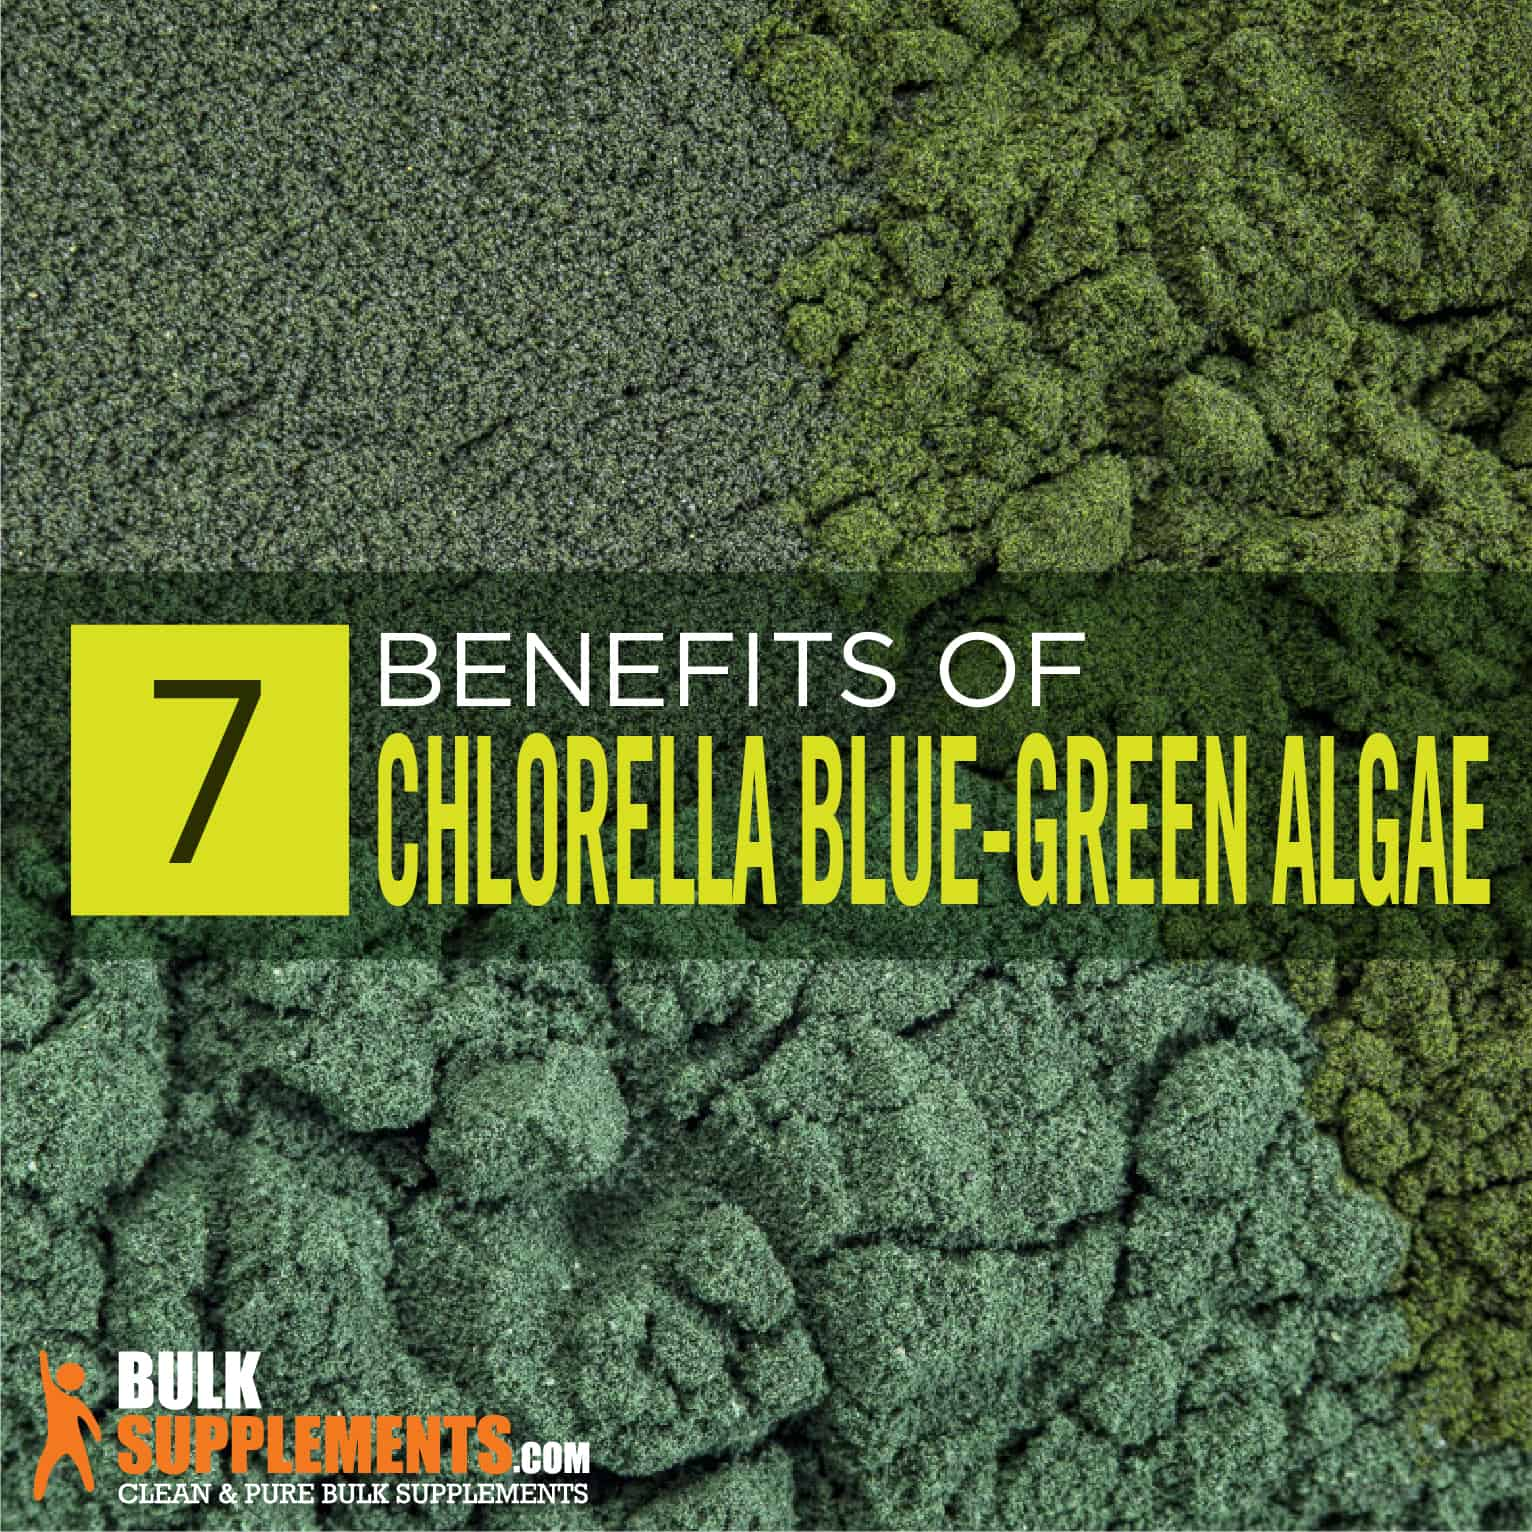 Chlorella Blue-Green Algae